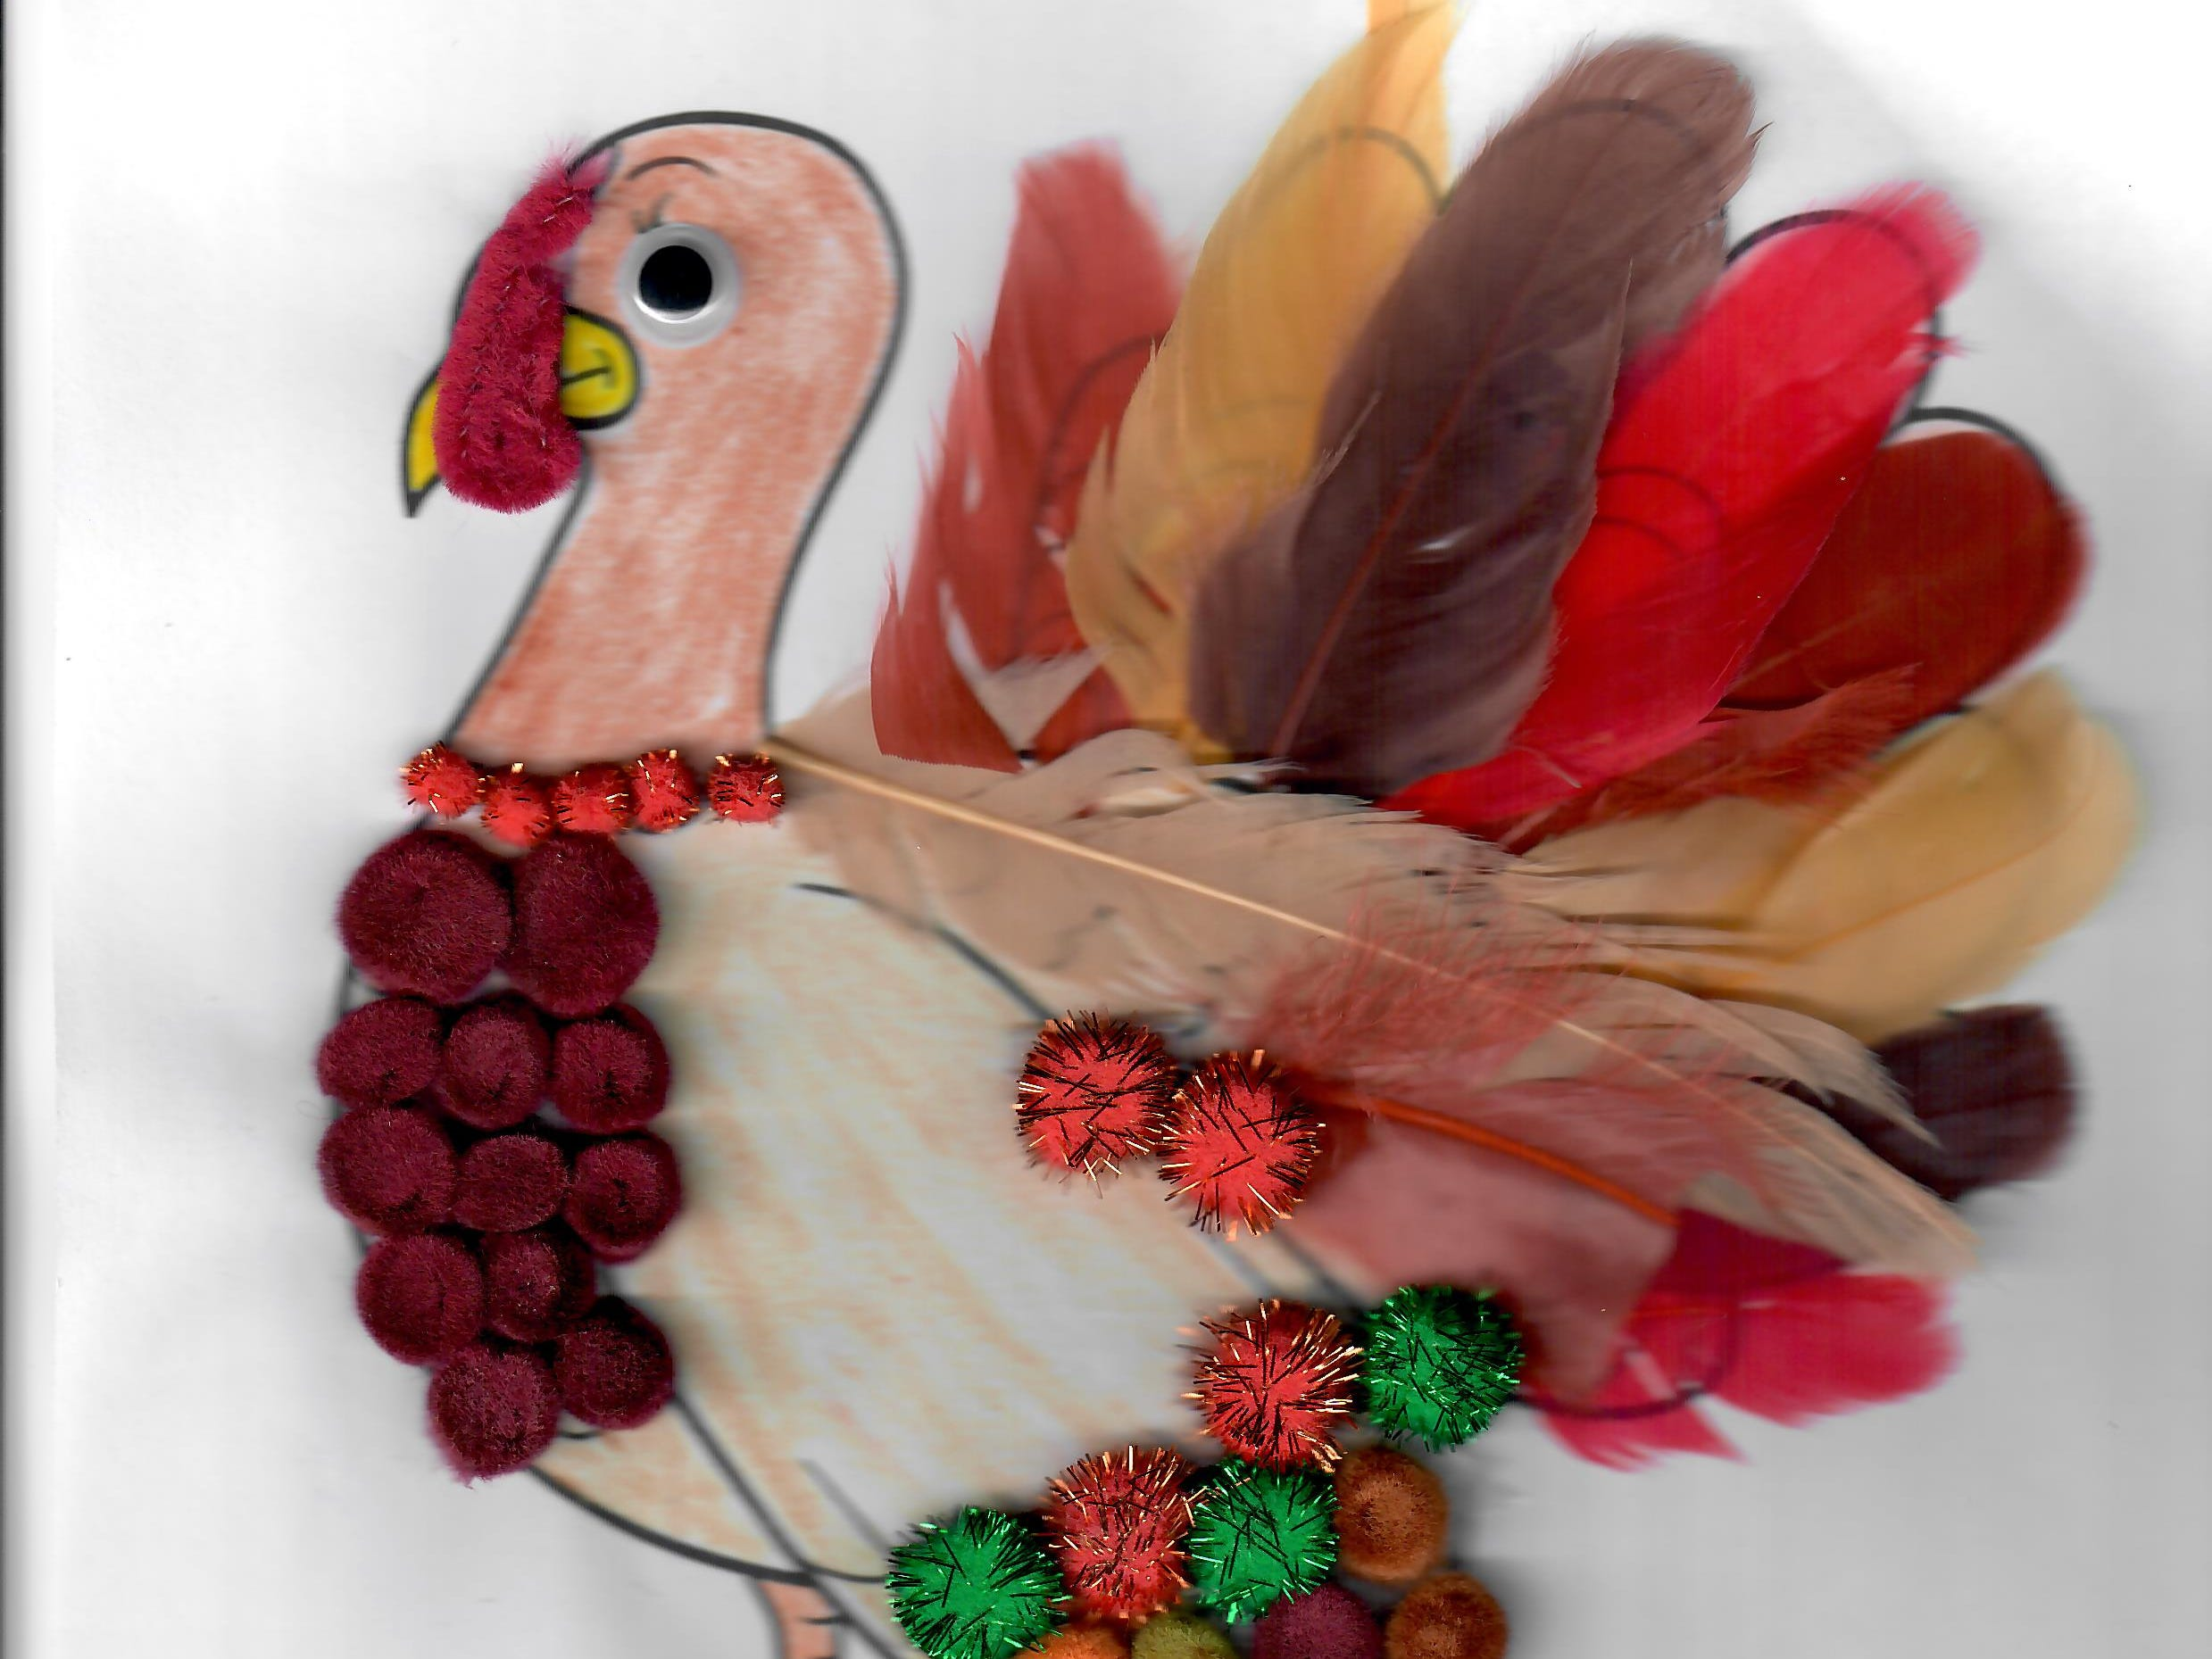 I. Manafra. Dress the Turkey Contest 2018.